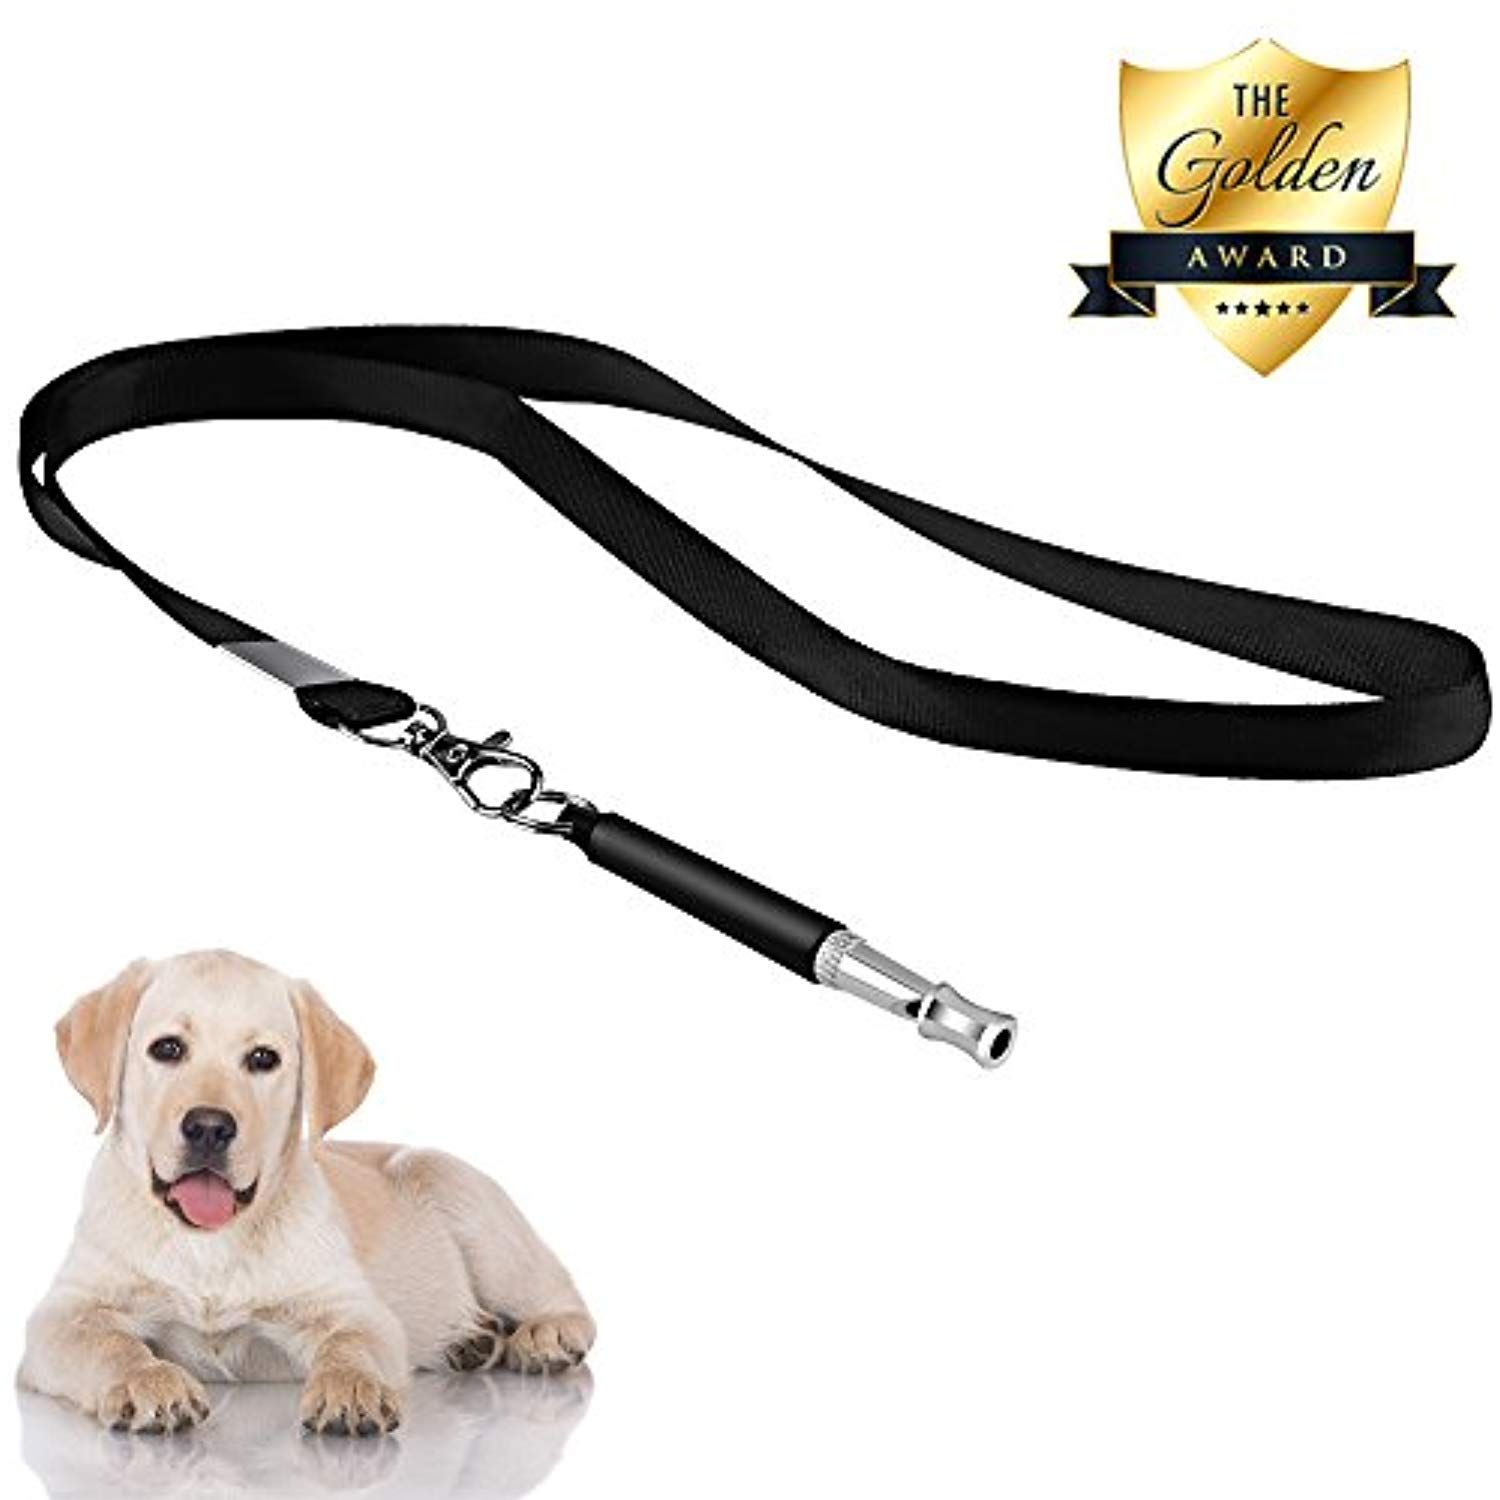 Onson Dog Whistle To Stop Barking Ultrasonic Patrol Sound